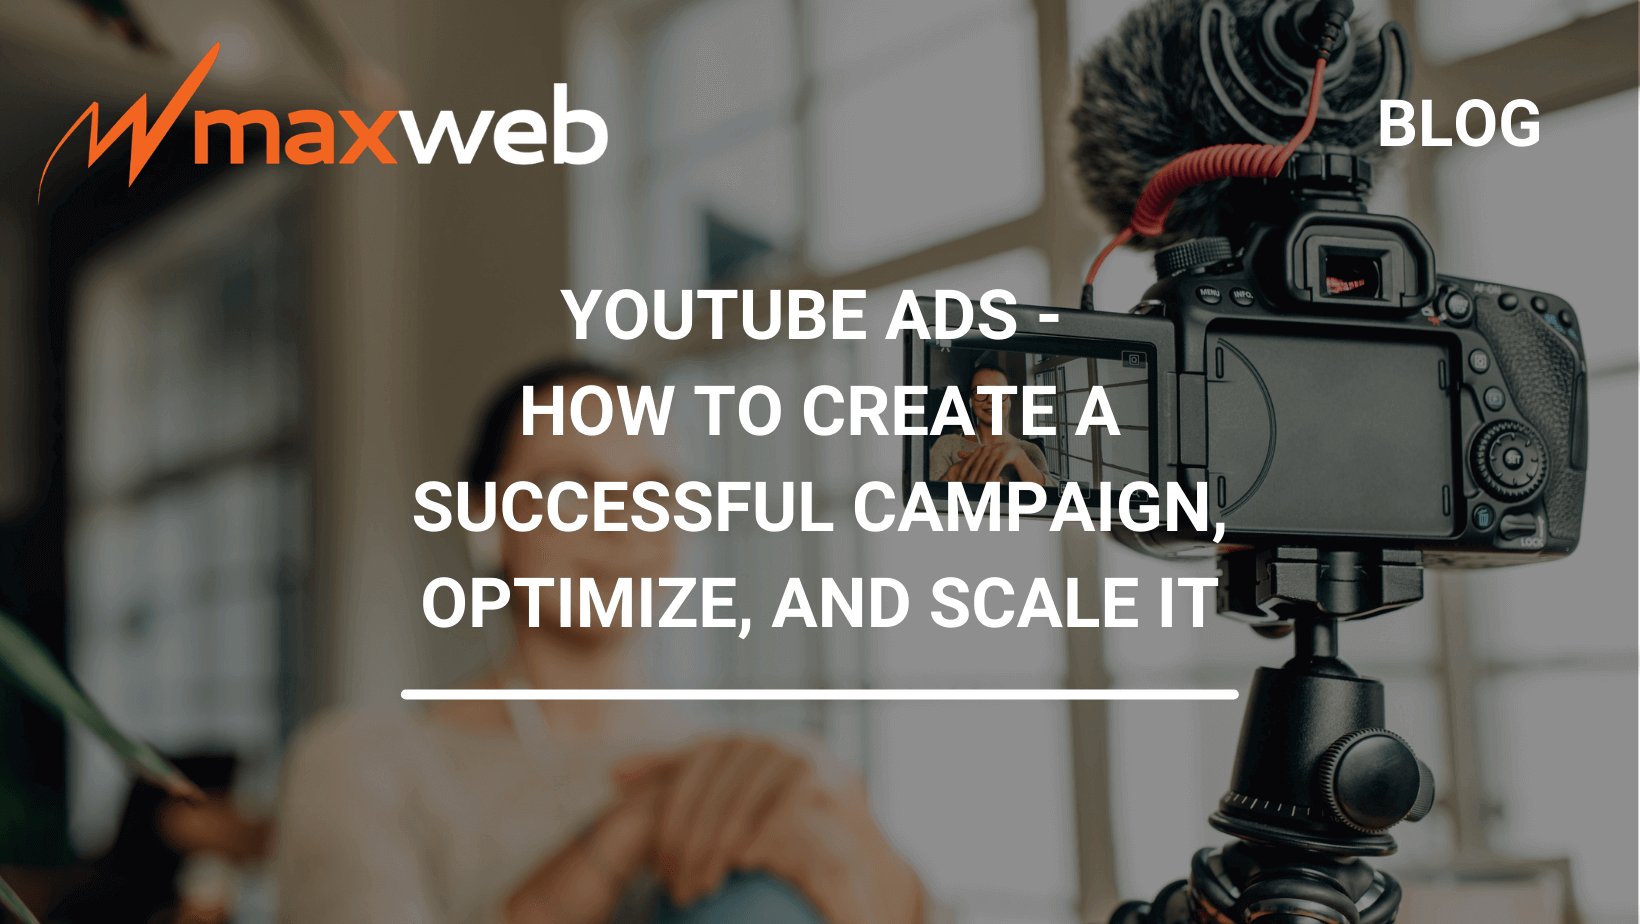 Youtube Ads - How To Create A Successful Campaign, Optimize, and Scale it